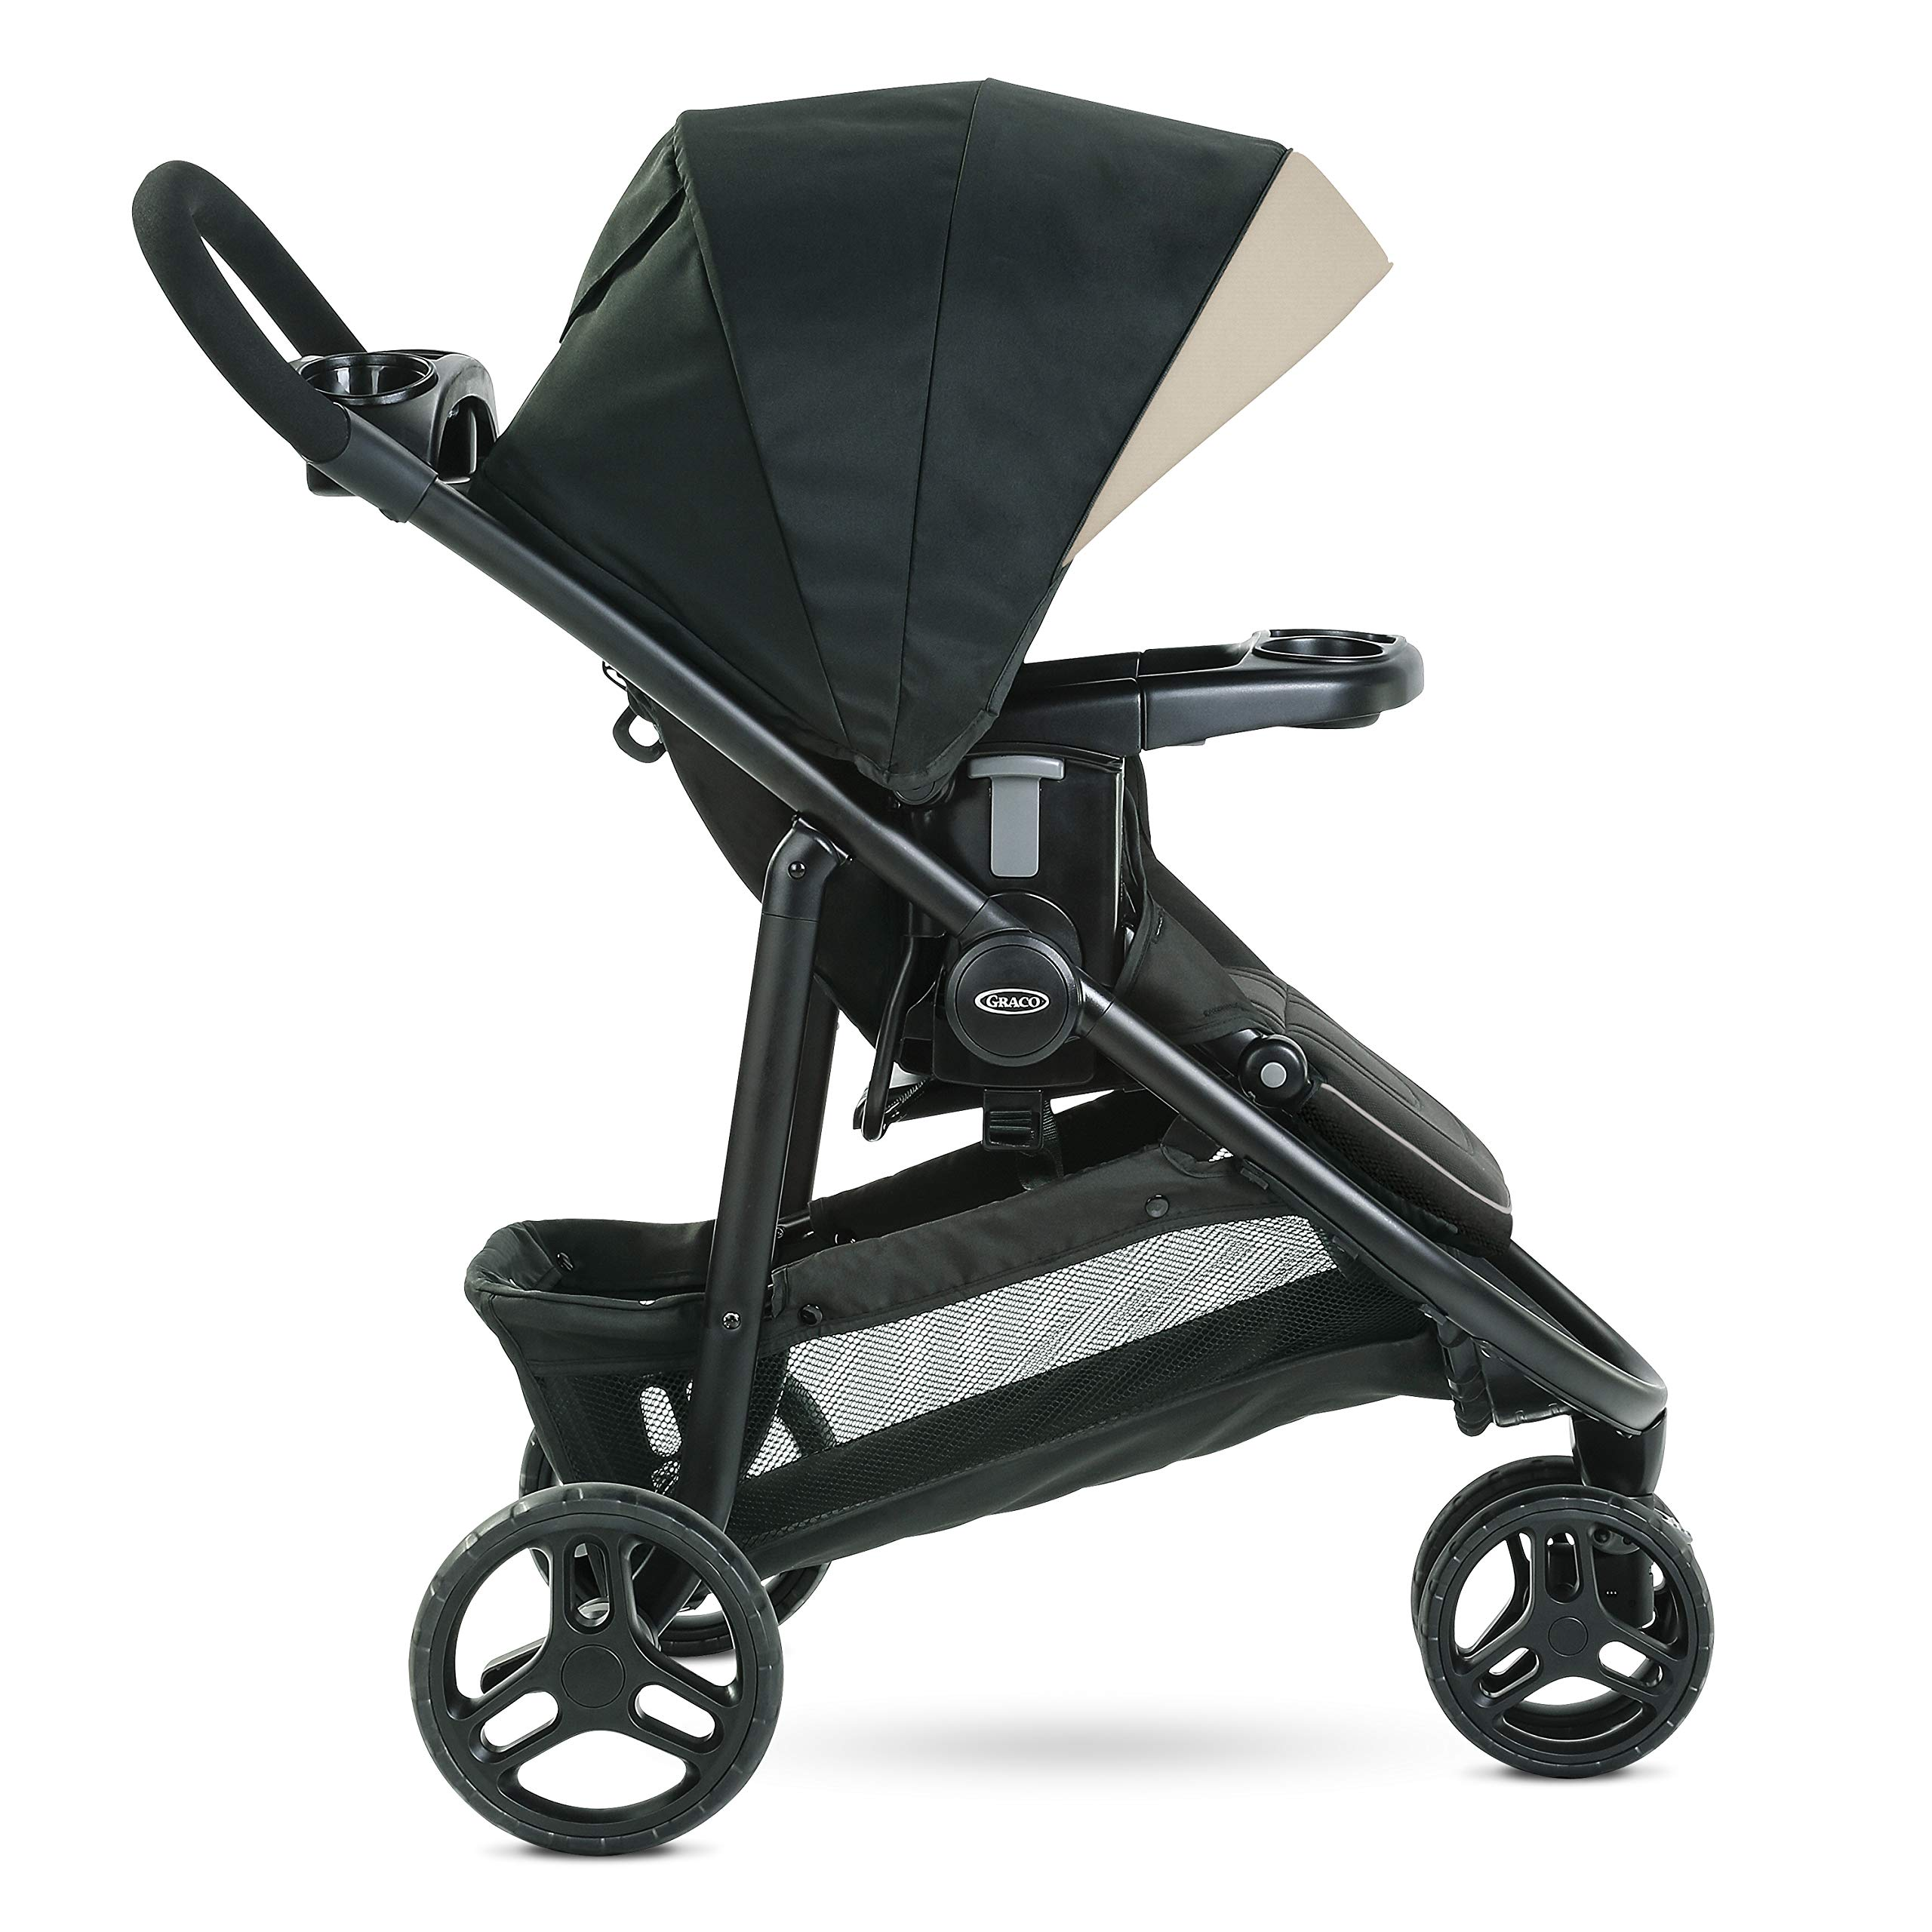 Graco Modes 3 Lite DLX Stroller, Includes Reversible Seat, Pierce by Graco